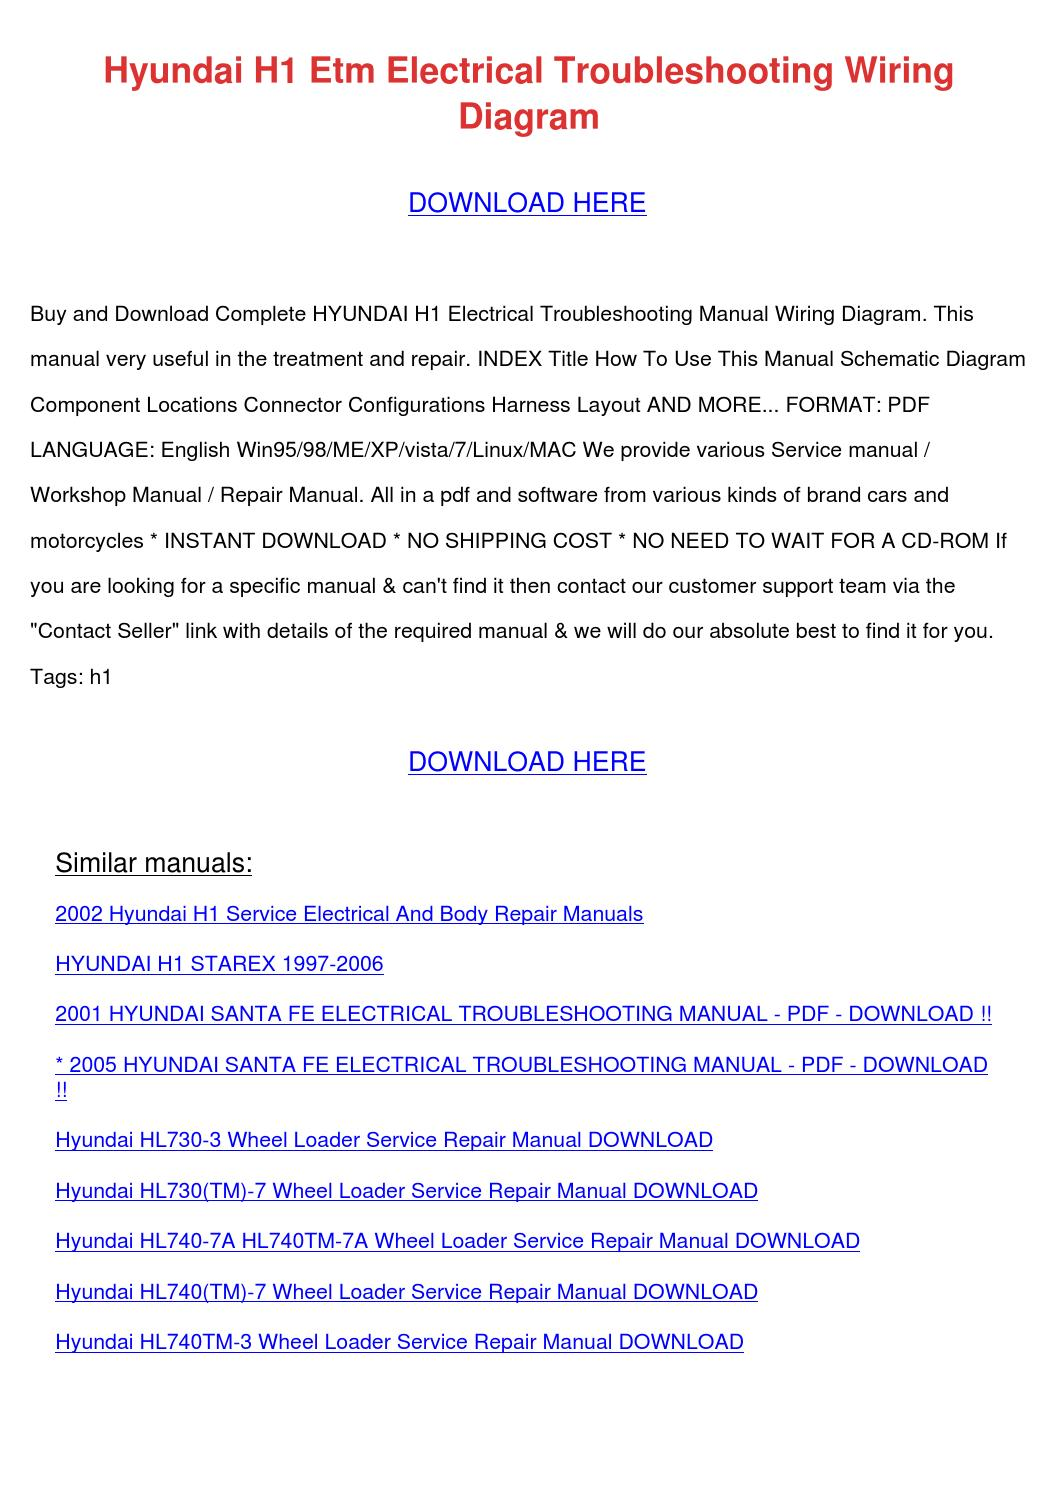 hight resolution of hyundai h1 etm electrical troubleshooting wir